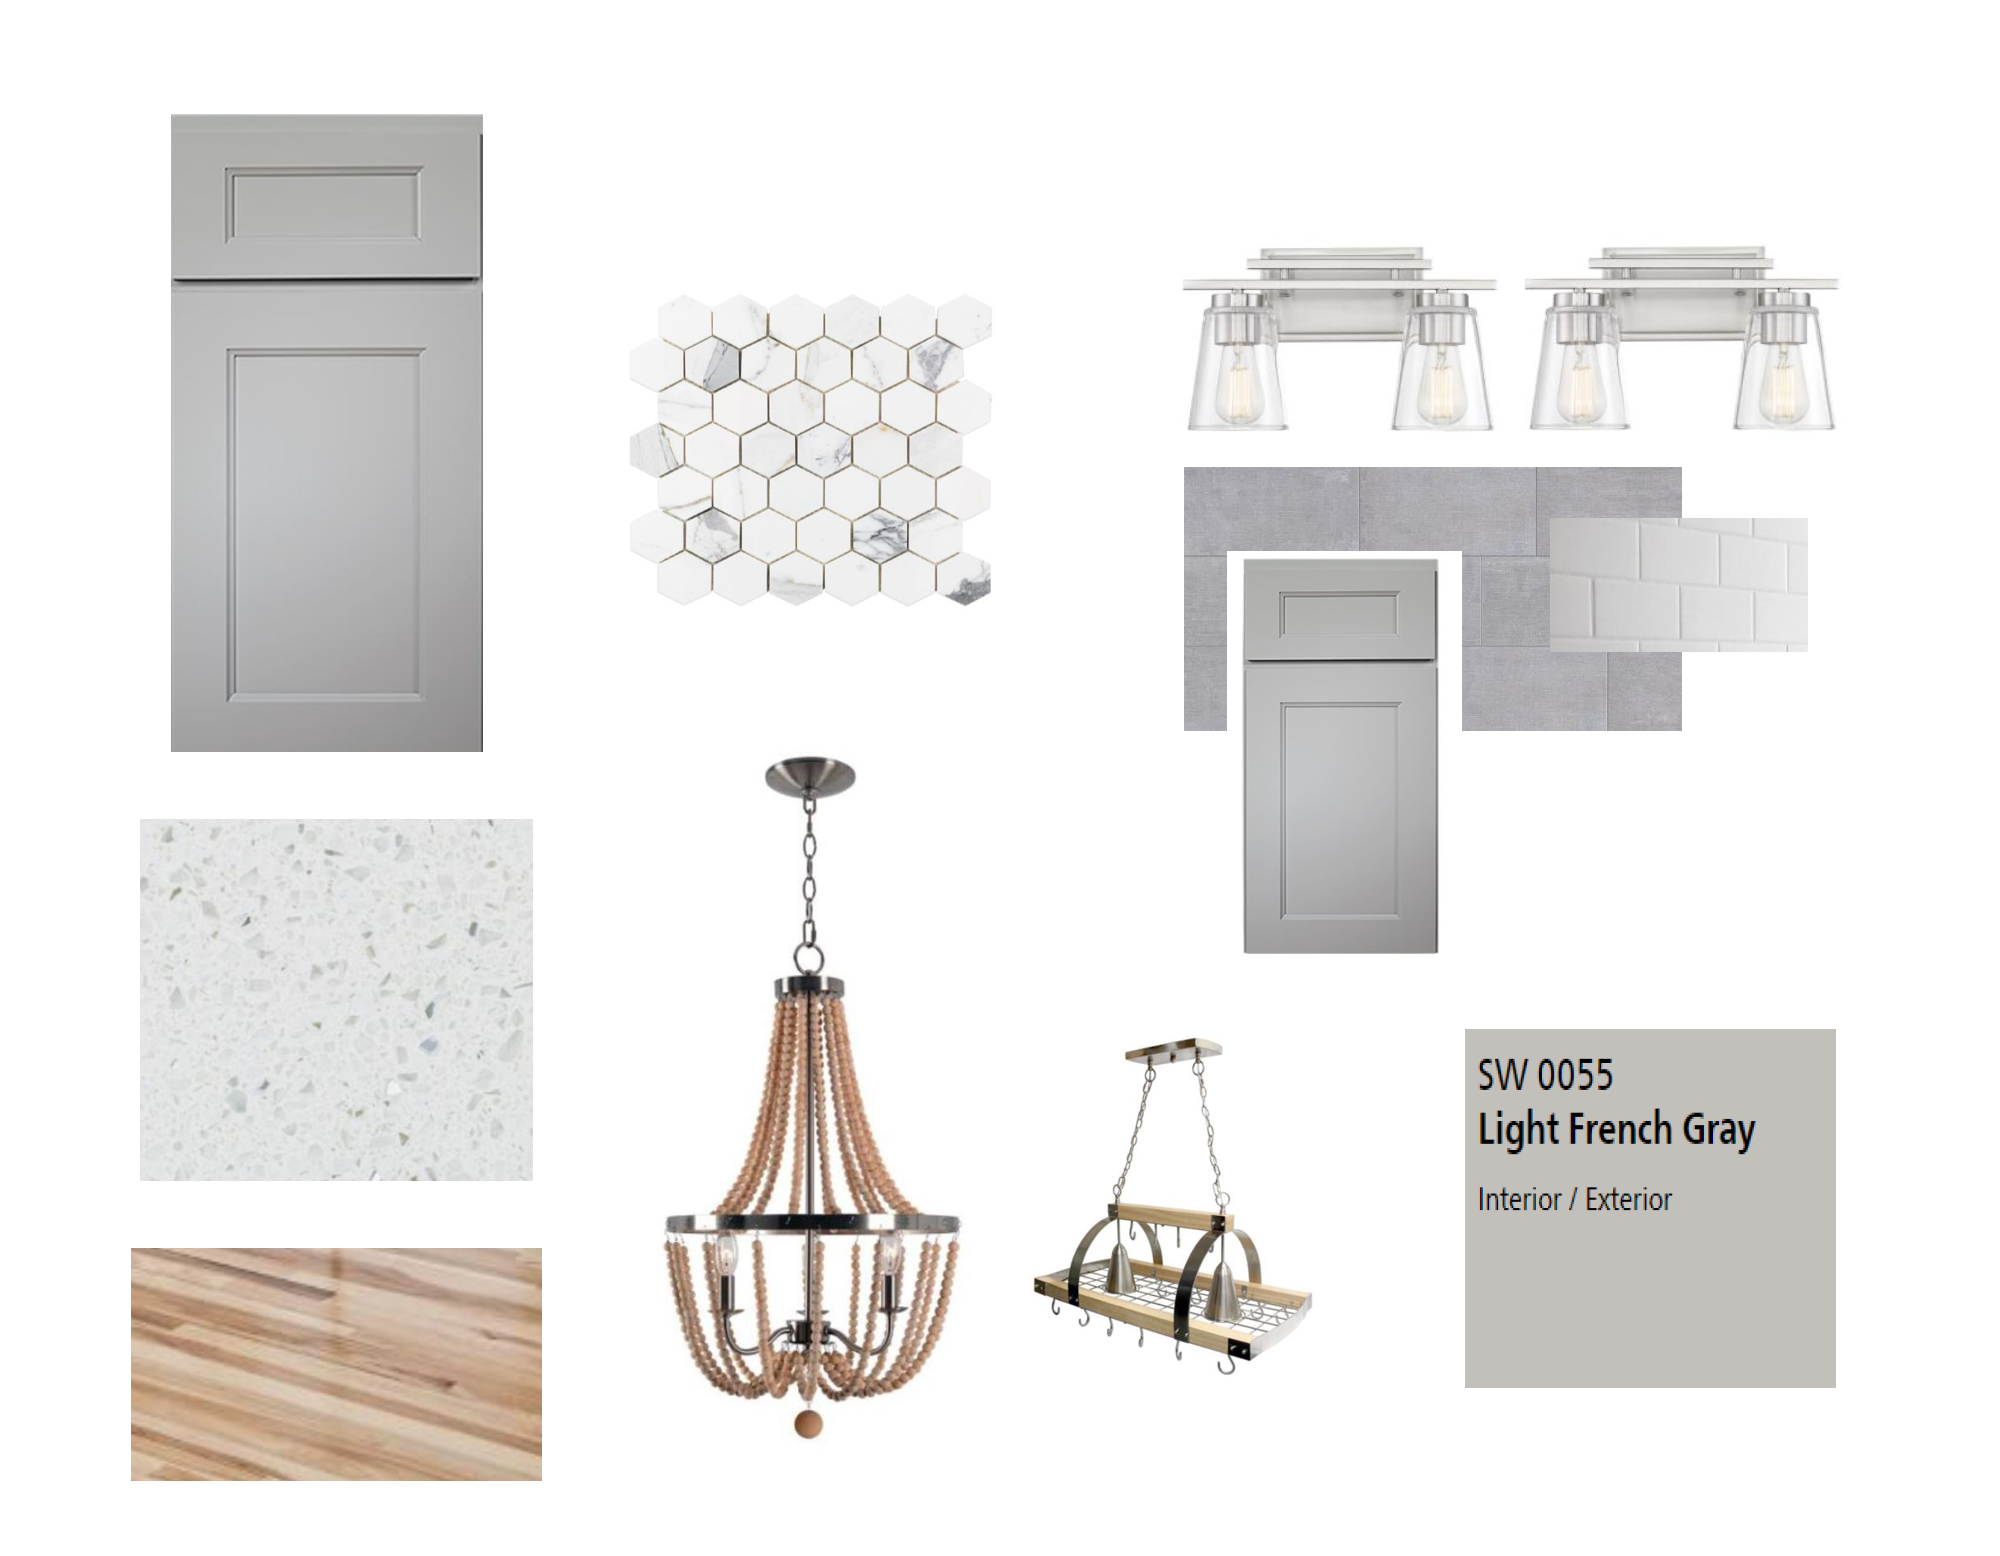 Clean. Modern. Finishes. - From quartz counter tops to hickory hardwoods, the difference is in the details.